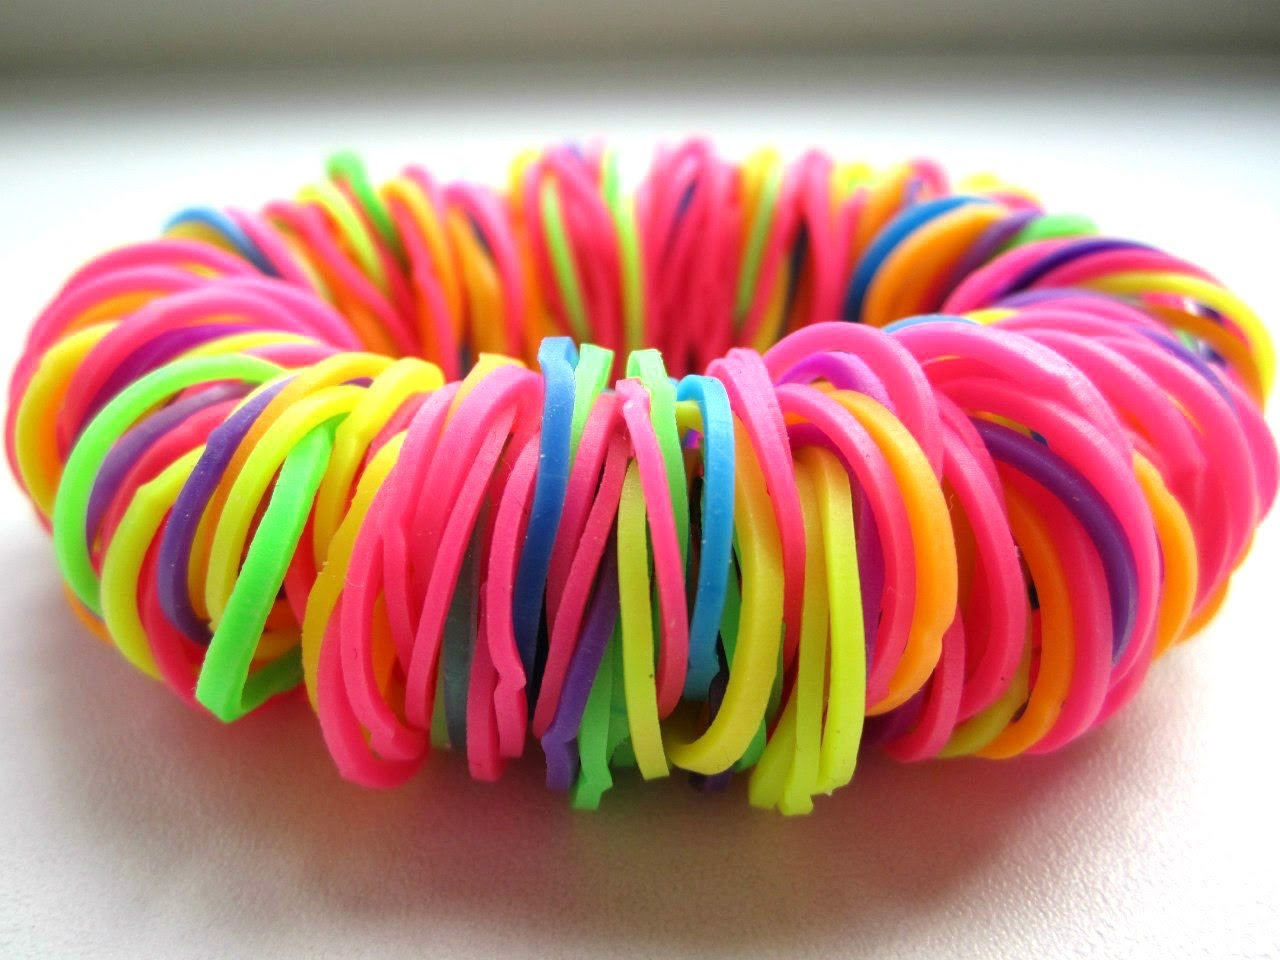 how to make bracelets out of rubber bands in different